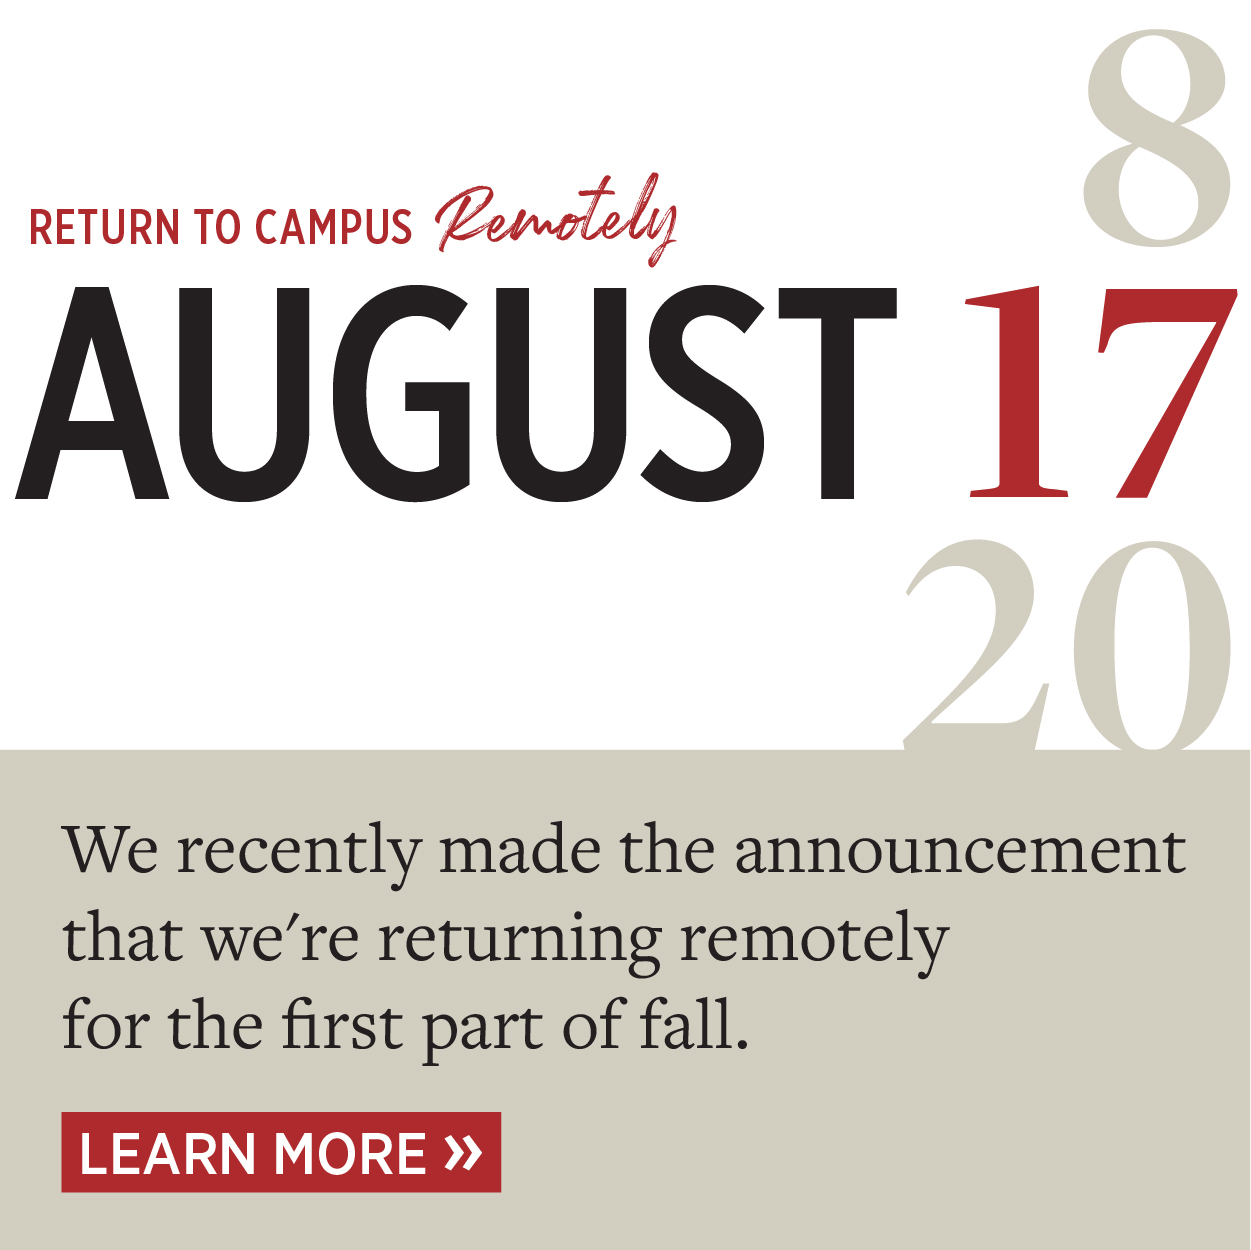 Return to Campus Remotely August 17. We recently made the announcement that we're returning remotely for the fist part of fall. Learn more.